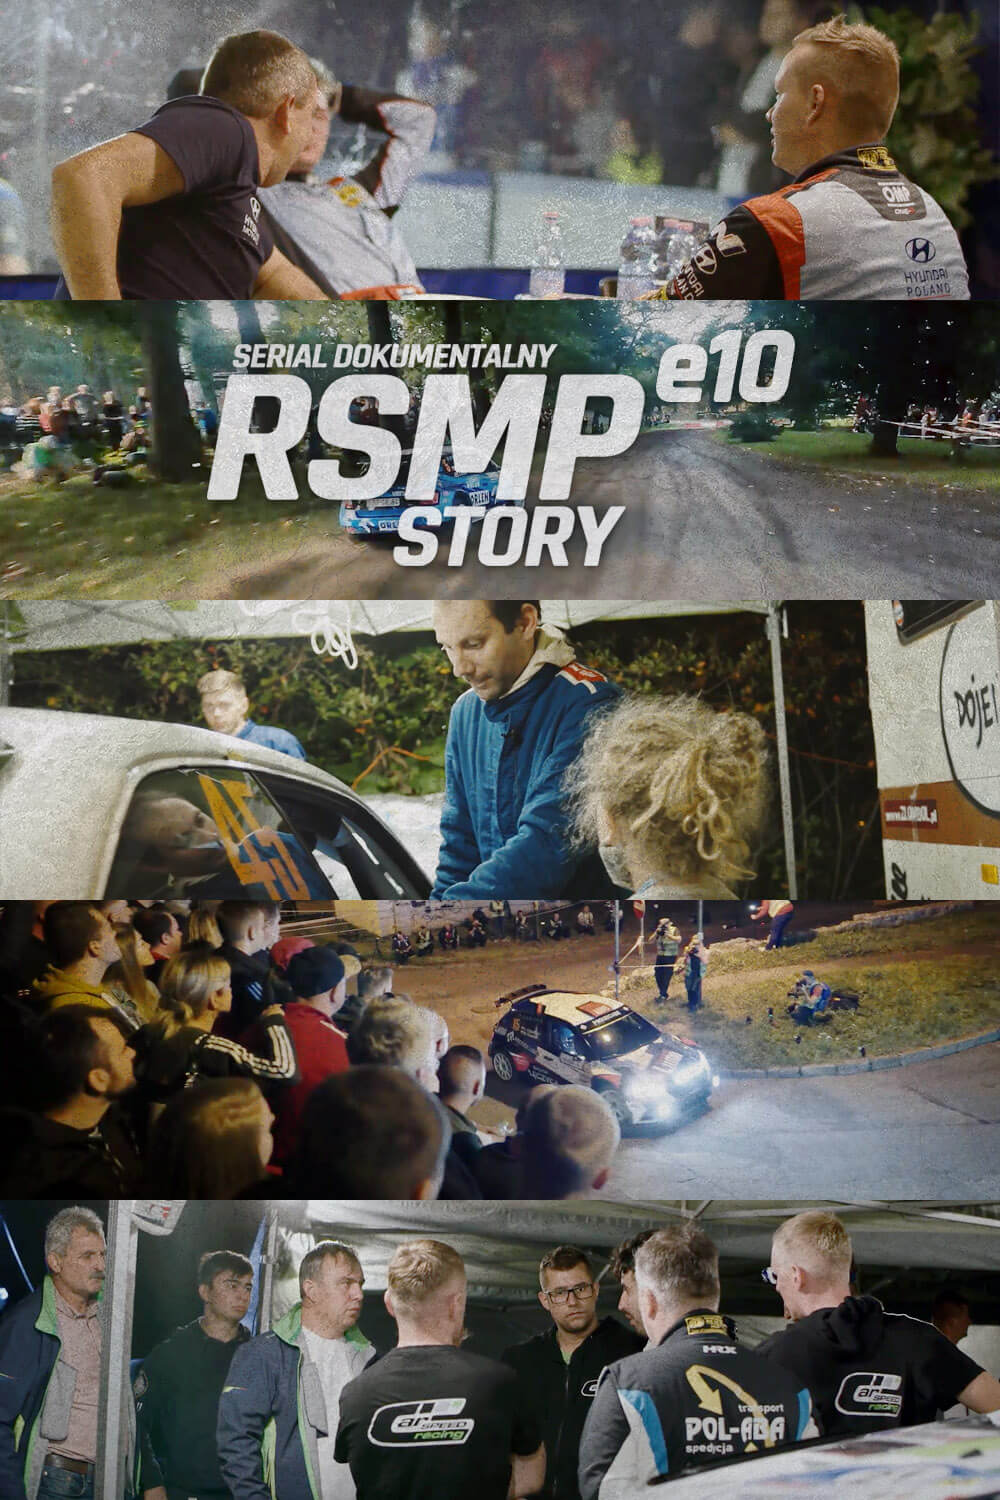 Poster - RSMP STORY s01e10